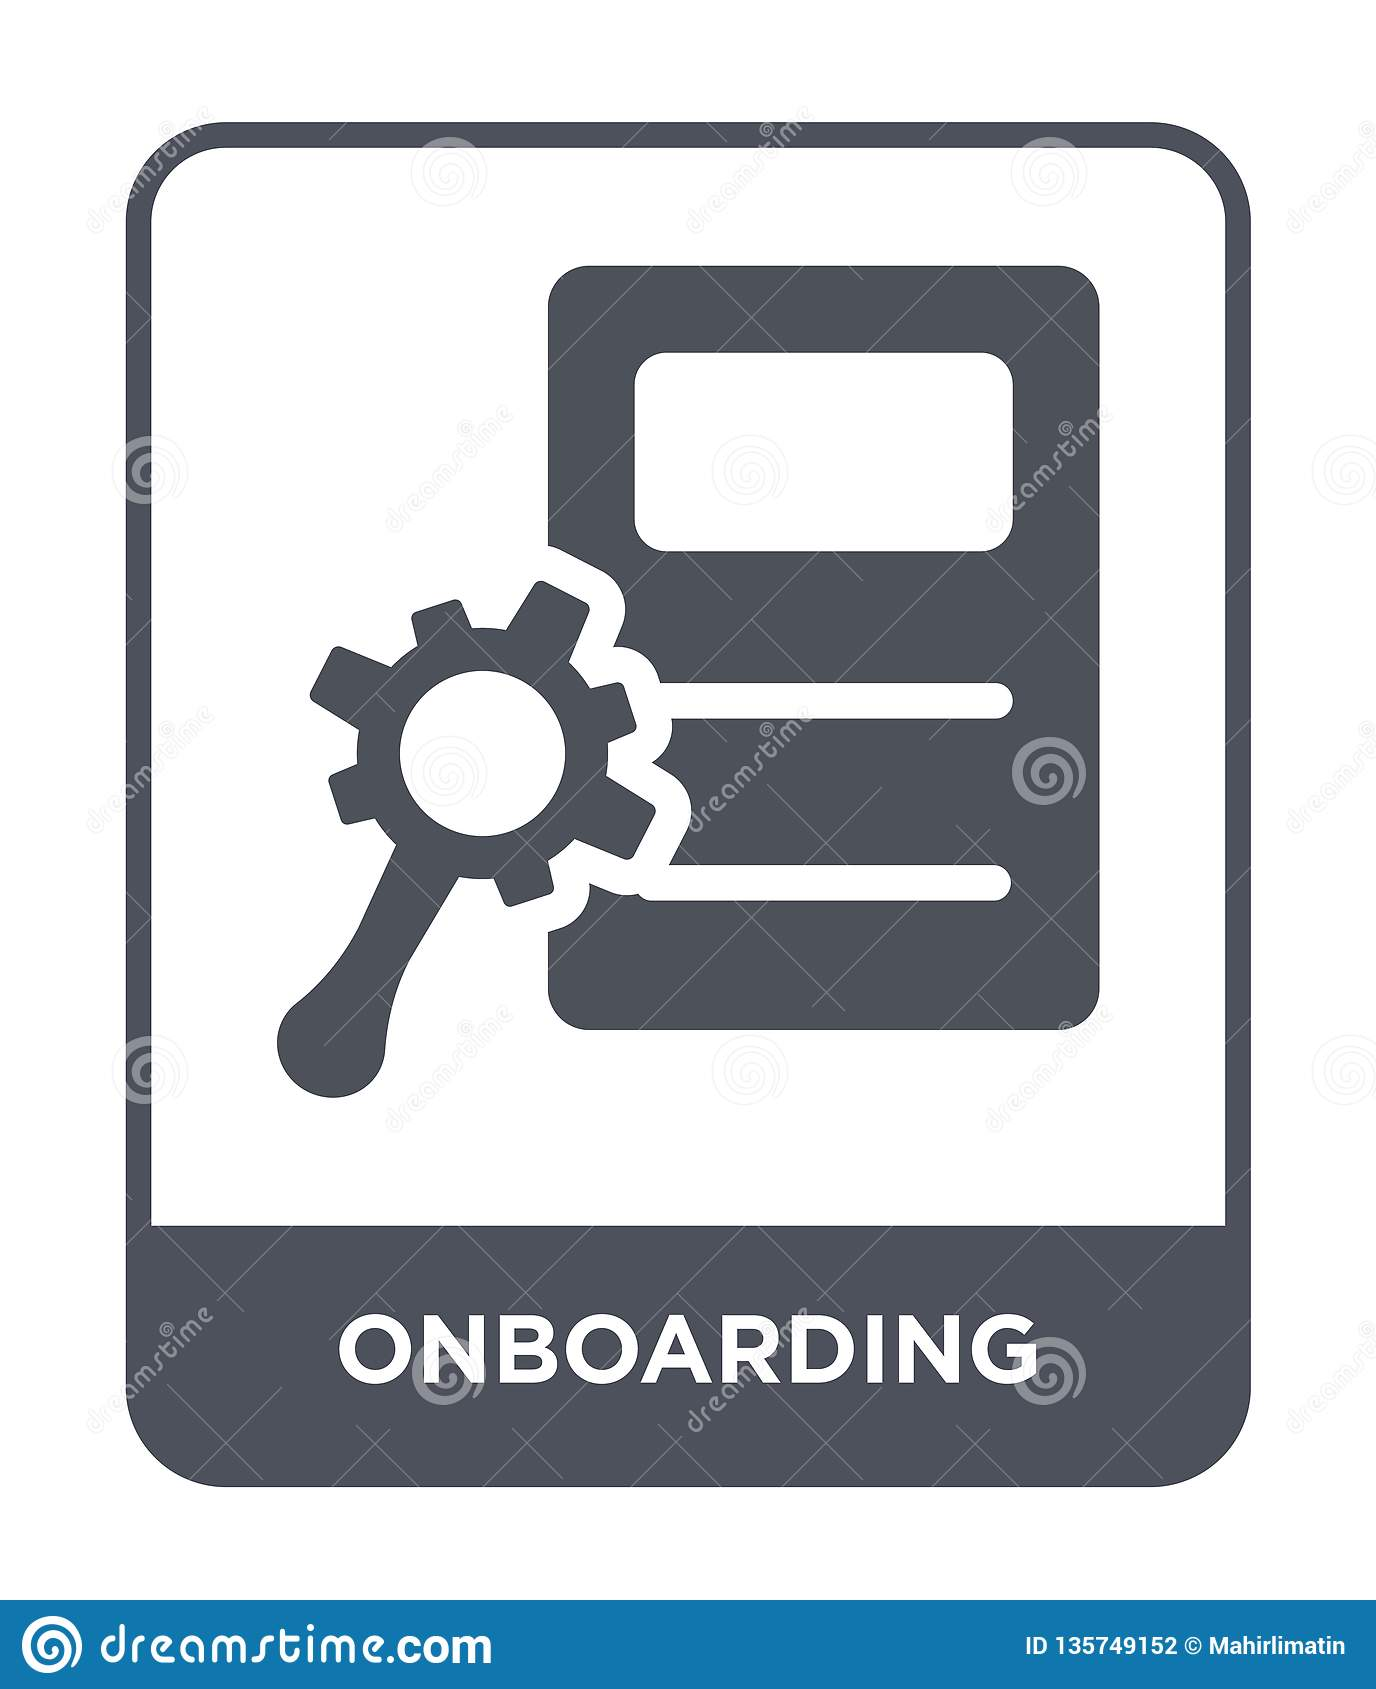 onboarding icon in trendy design style. onboarding icon isolated on white background. onboarding vector icon simple and modern